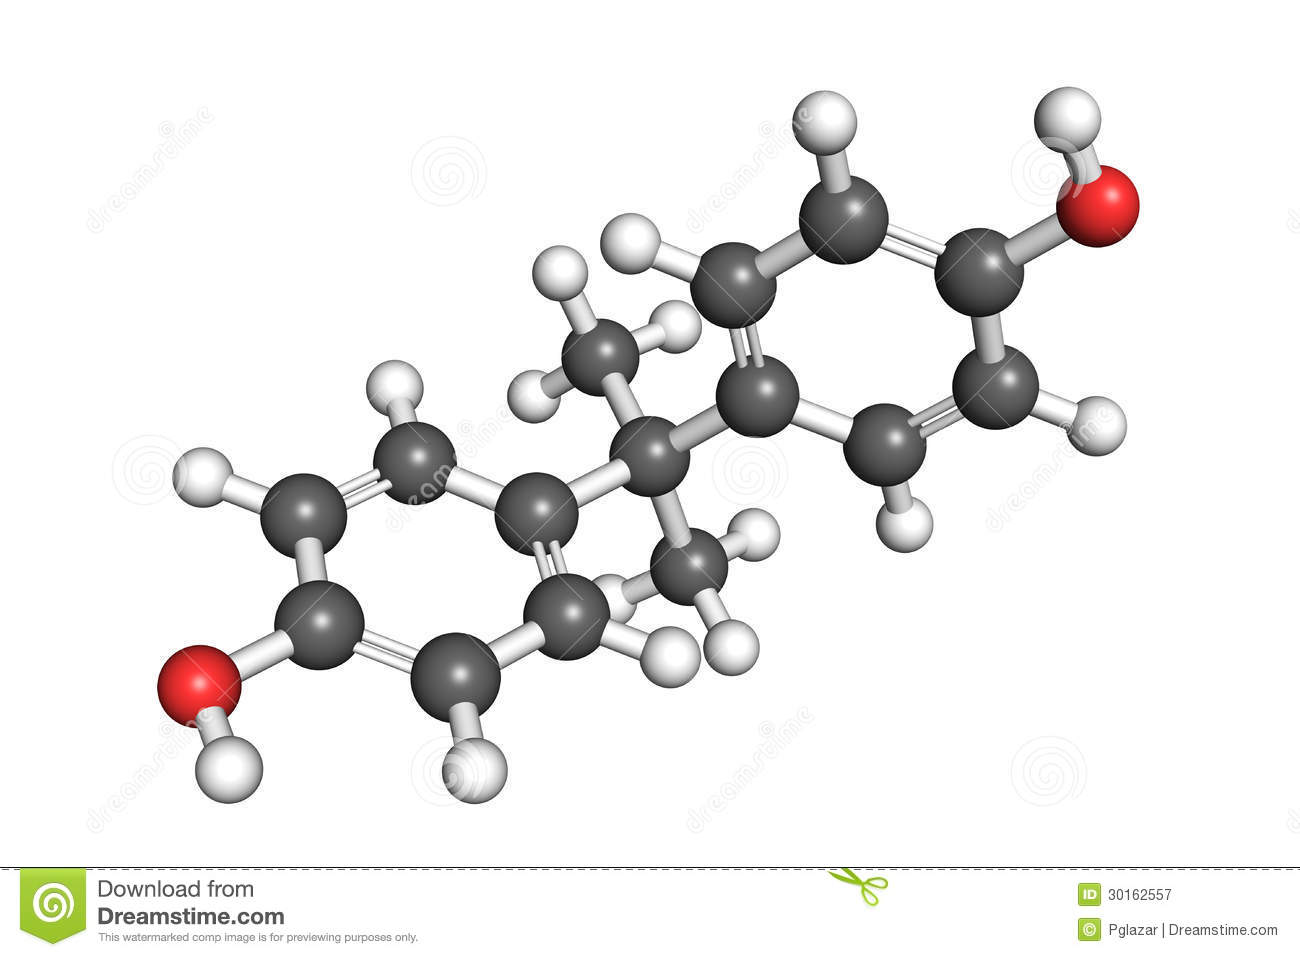 bisphenol a structure royalty free stock photography